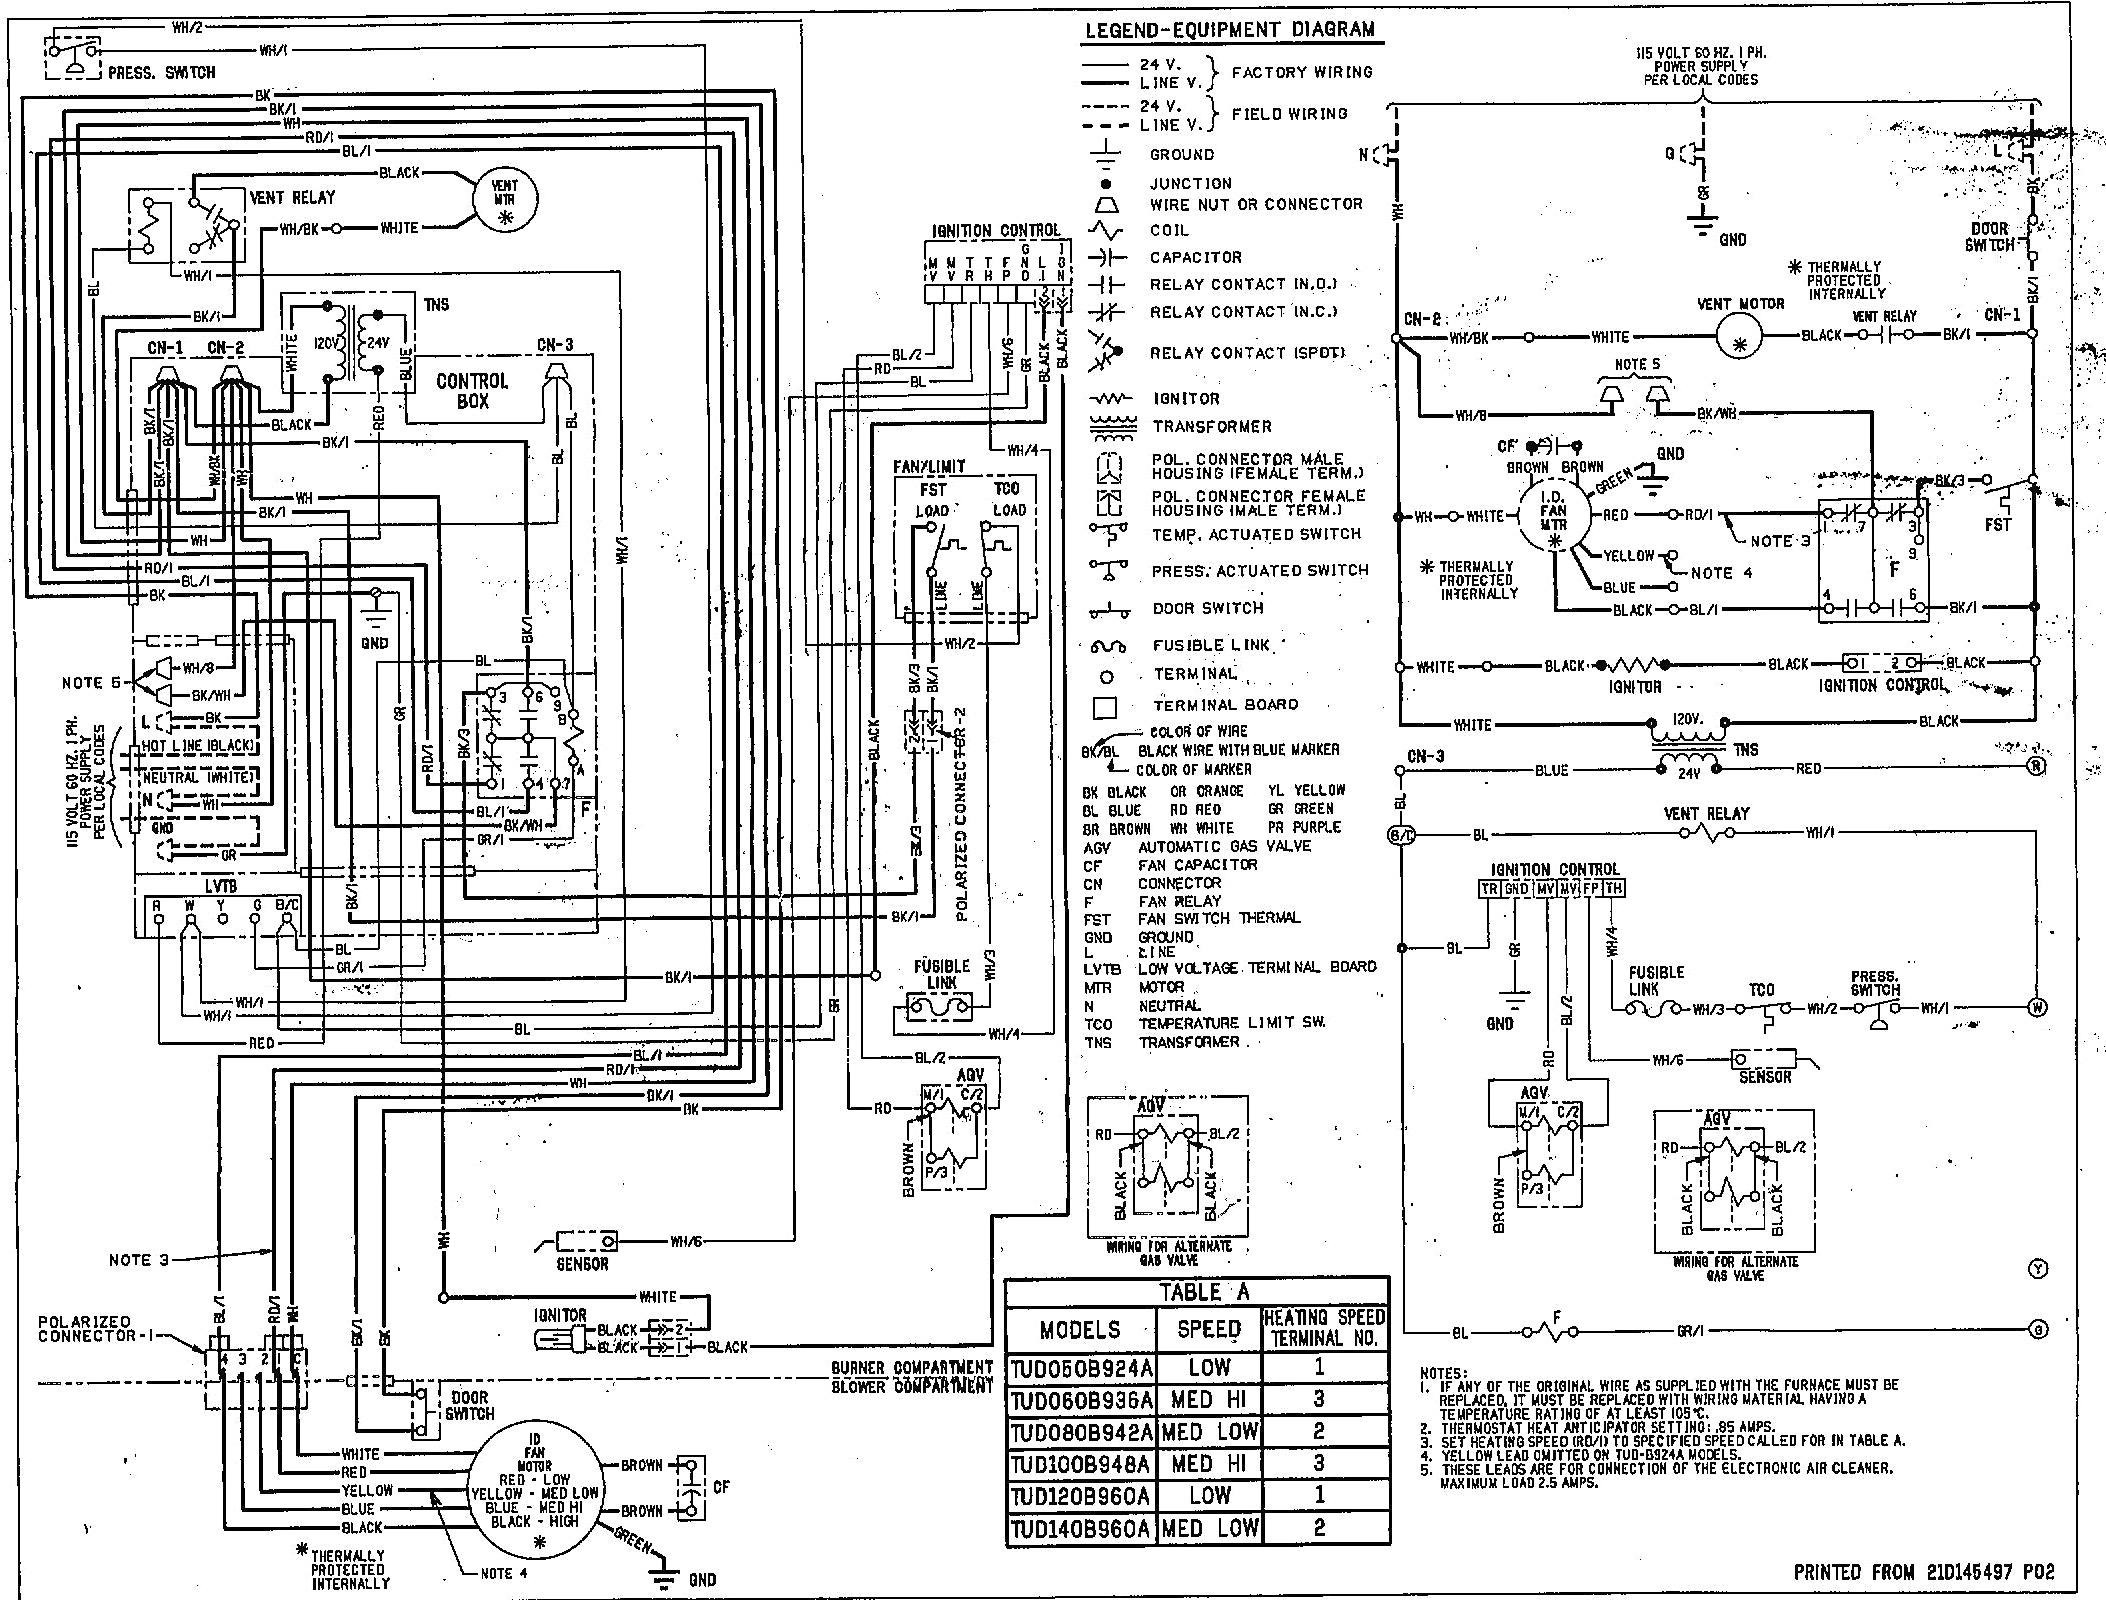 Trane Xl Wiring Diagram Gallery